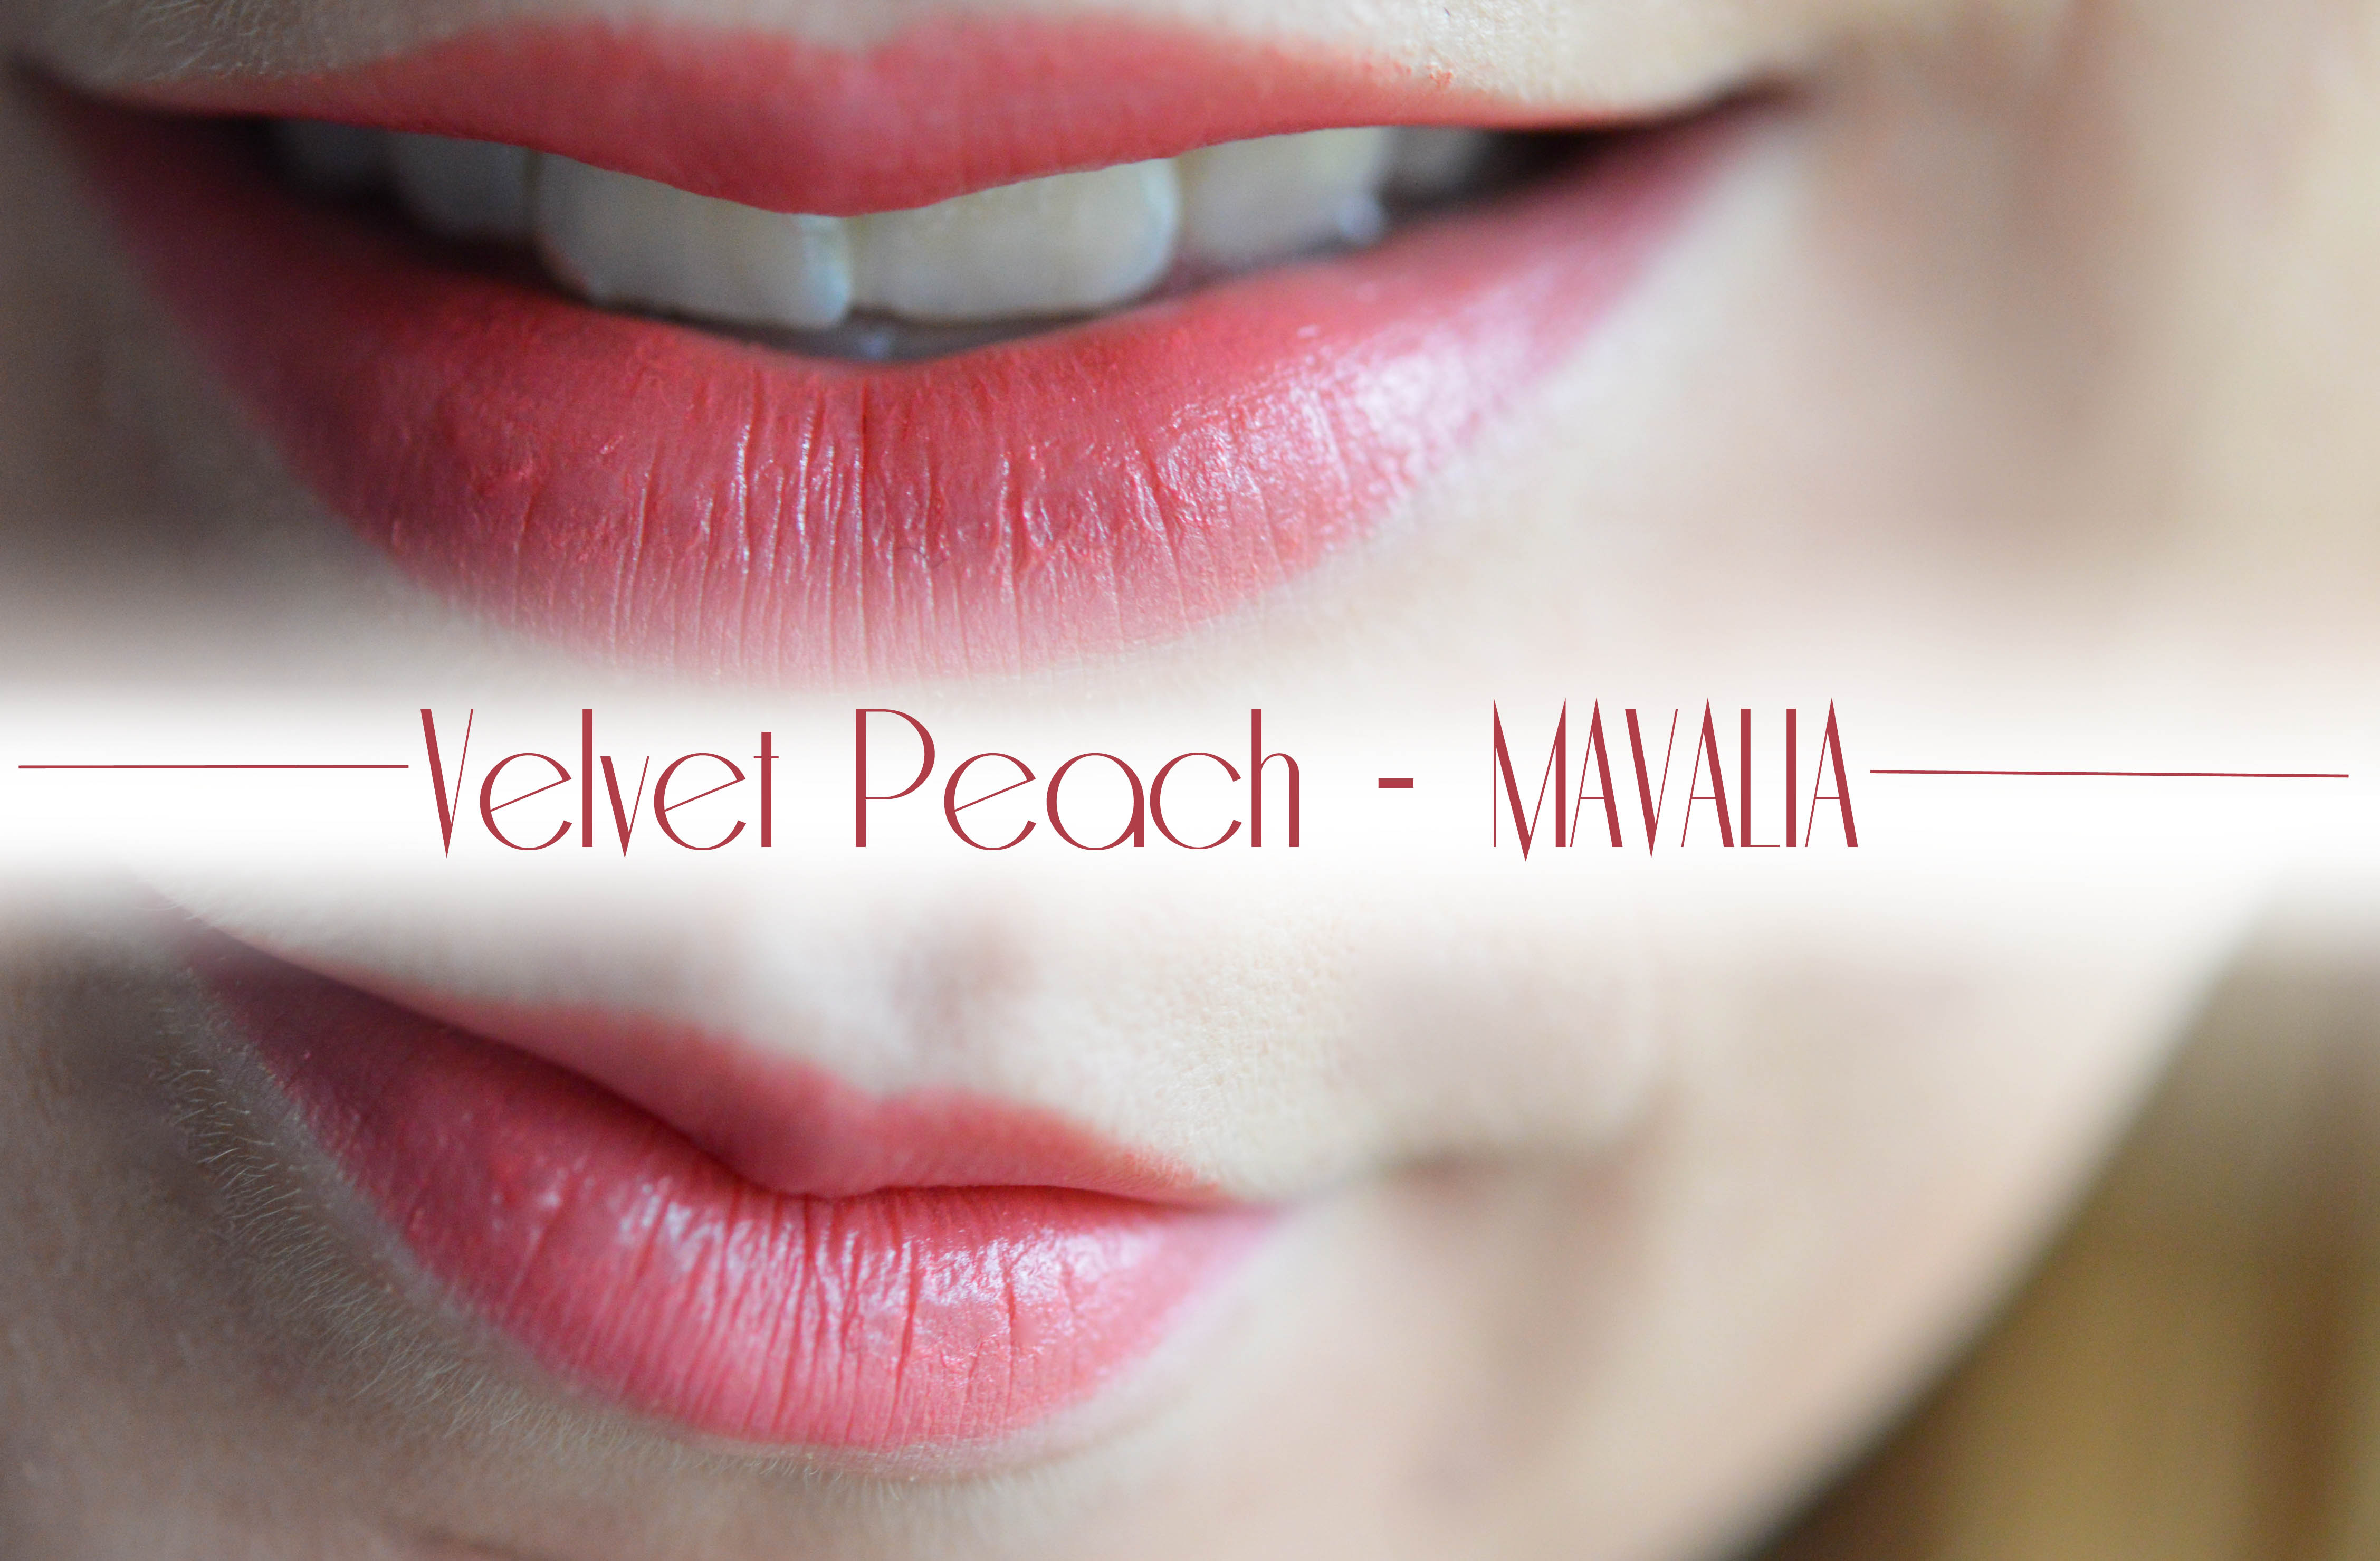 ALITTLEB_BLOG_BEAUTE_MAVALIA_LIP_BASE_LE_SECRET_DUN_SOURIRE_A_TOUTE_EPREUVE_ROUGE_ROSETTO_VELVET_PEACH_SWATCH_ROSSETTO